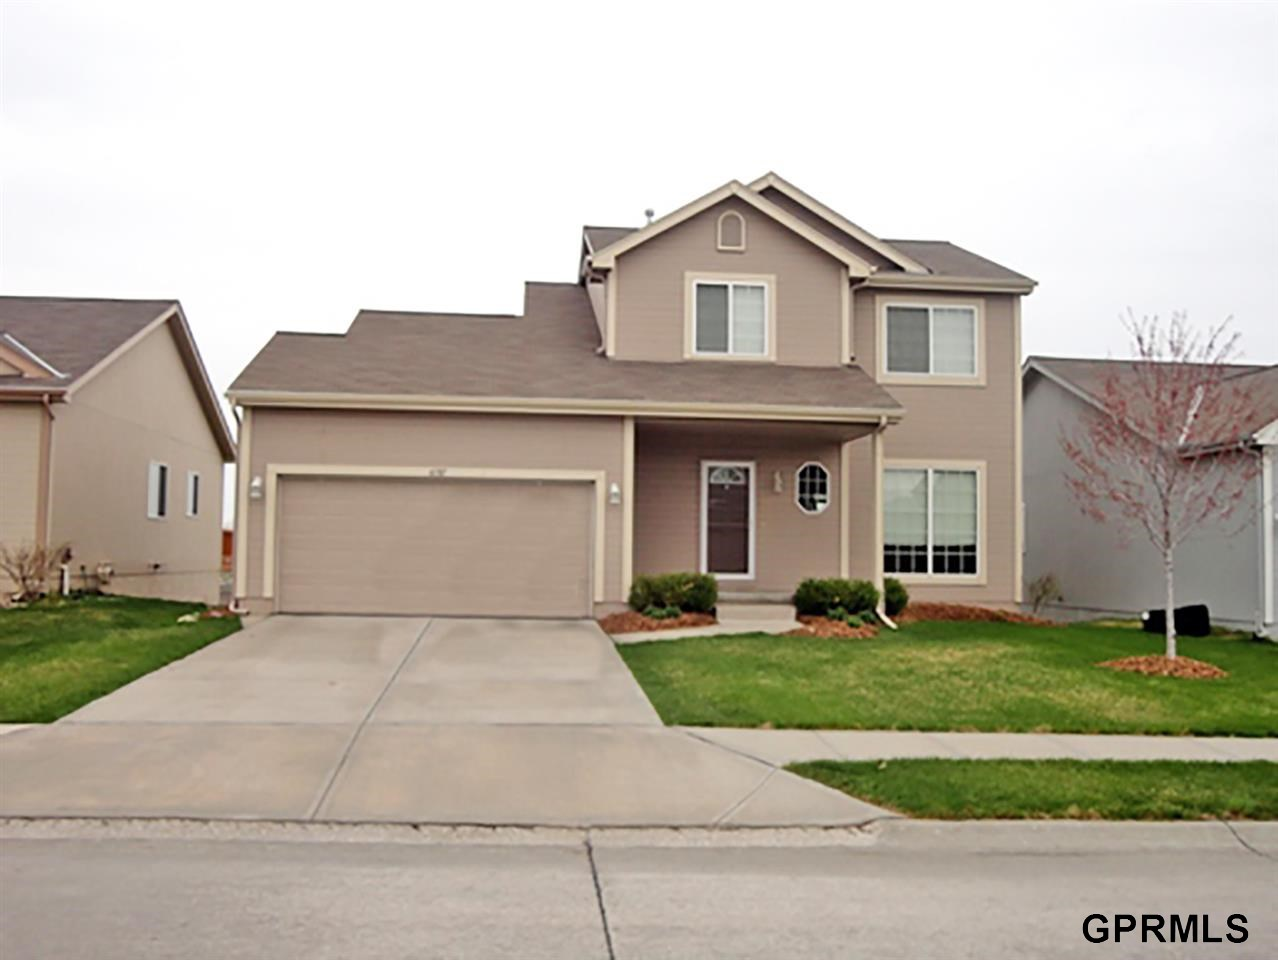 Rental Homes for Rent, ListingId:31222972, location: 6101 S 191st Omaha 68135